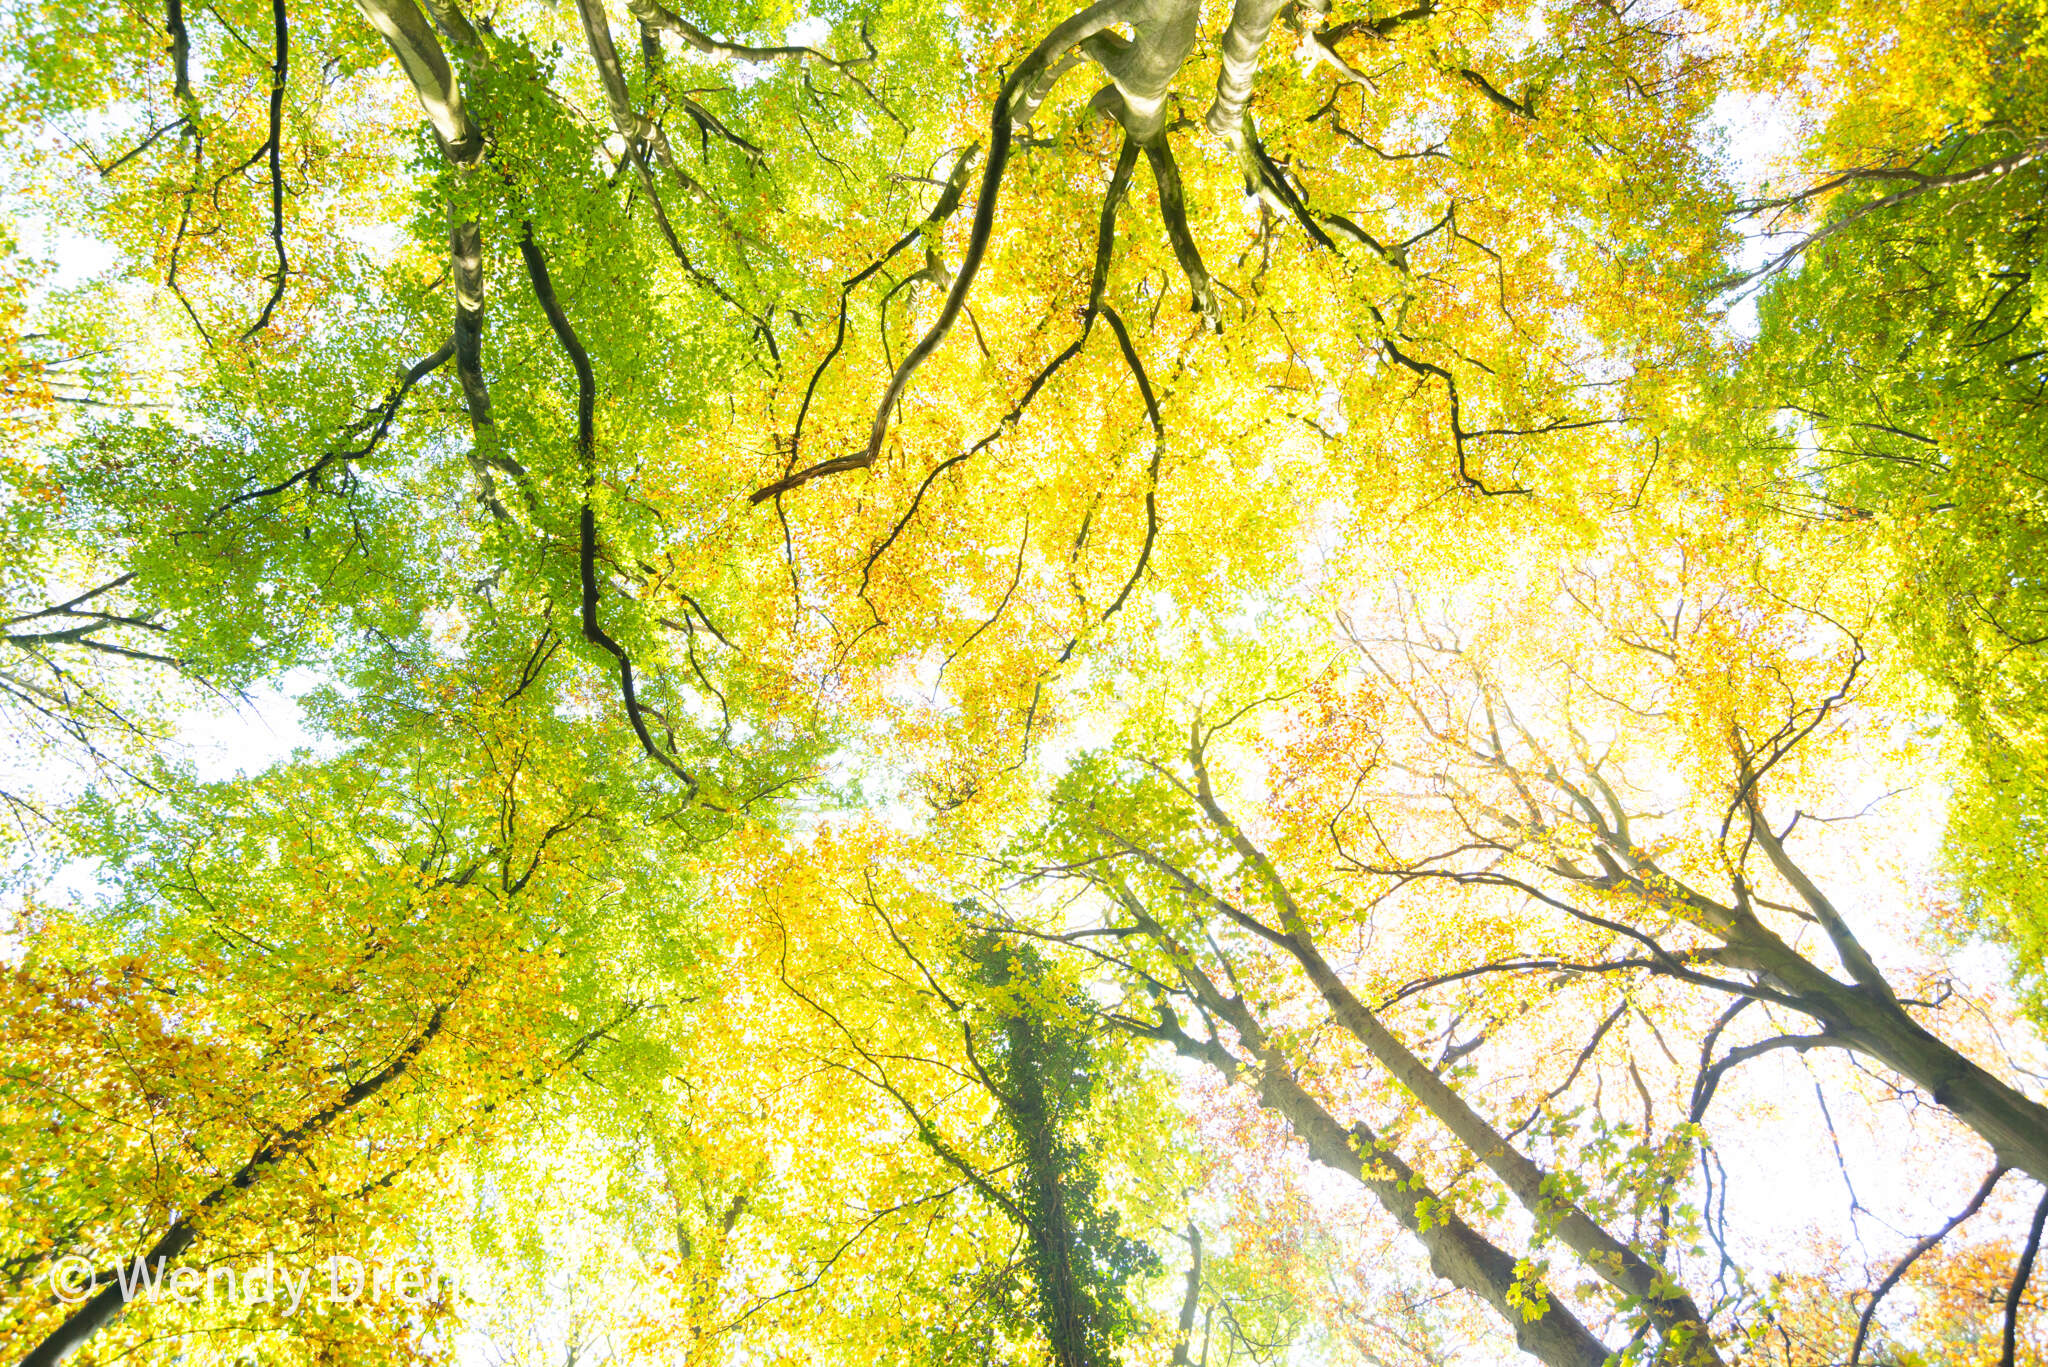 wendy drent, autumn, tree, forest, green and yellow, landscape, wendy drent.com